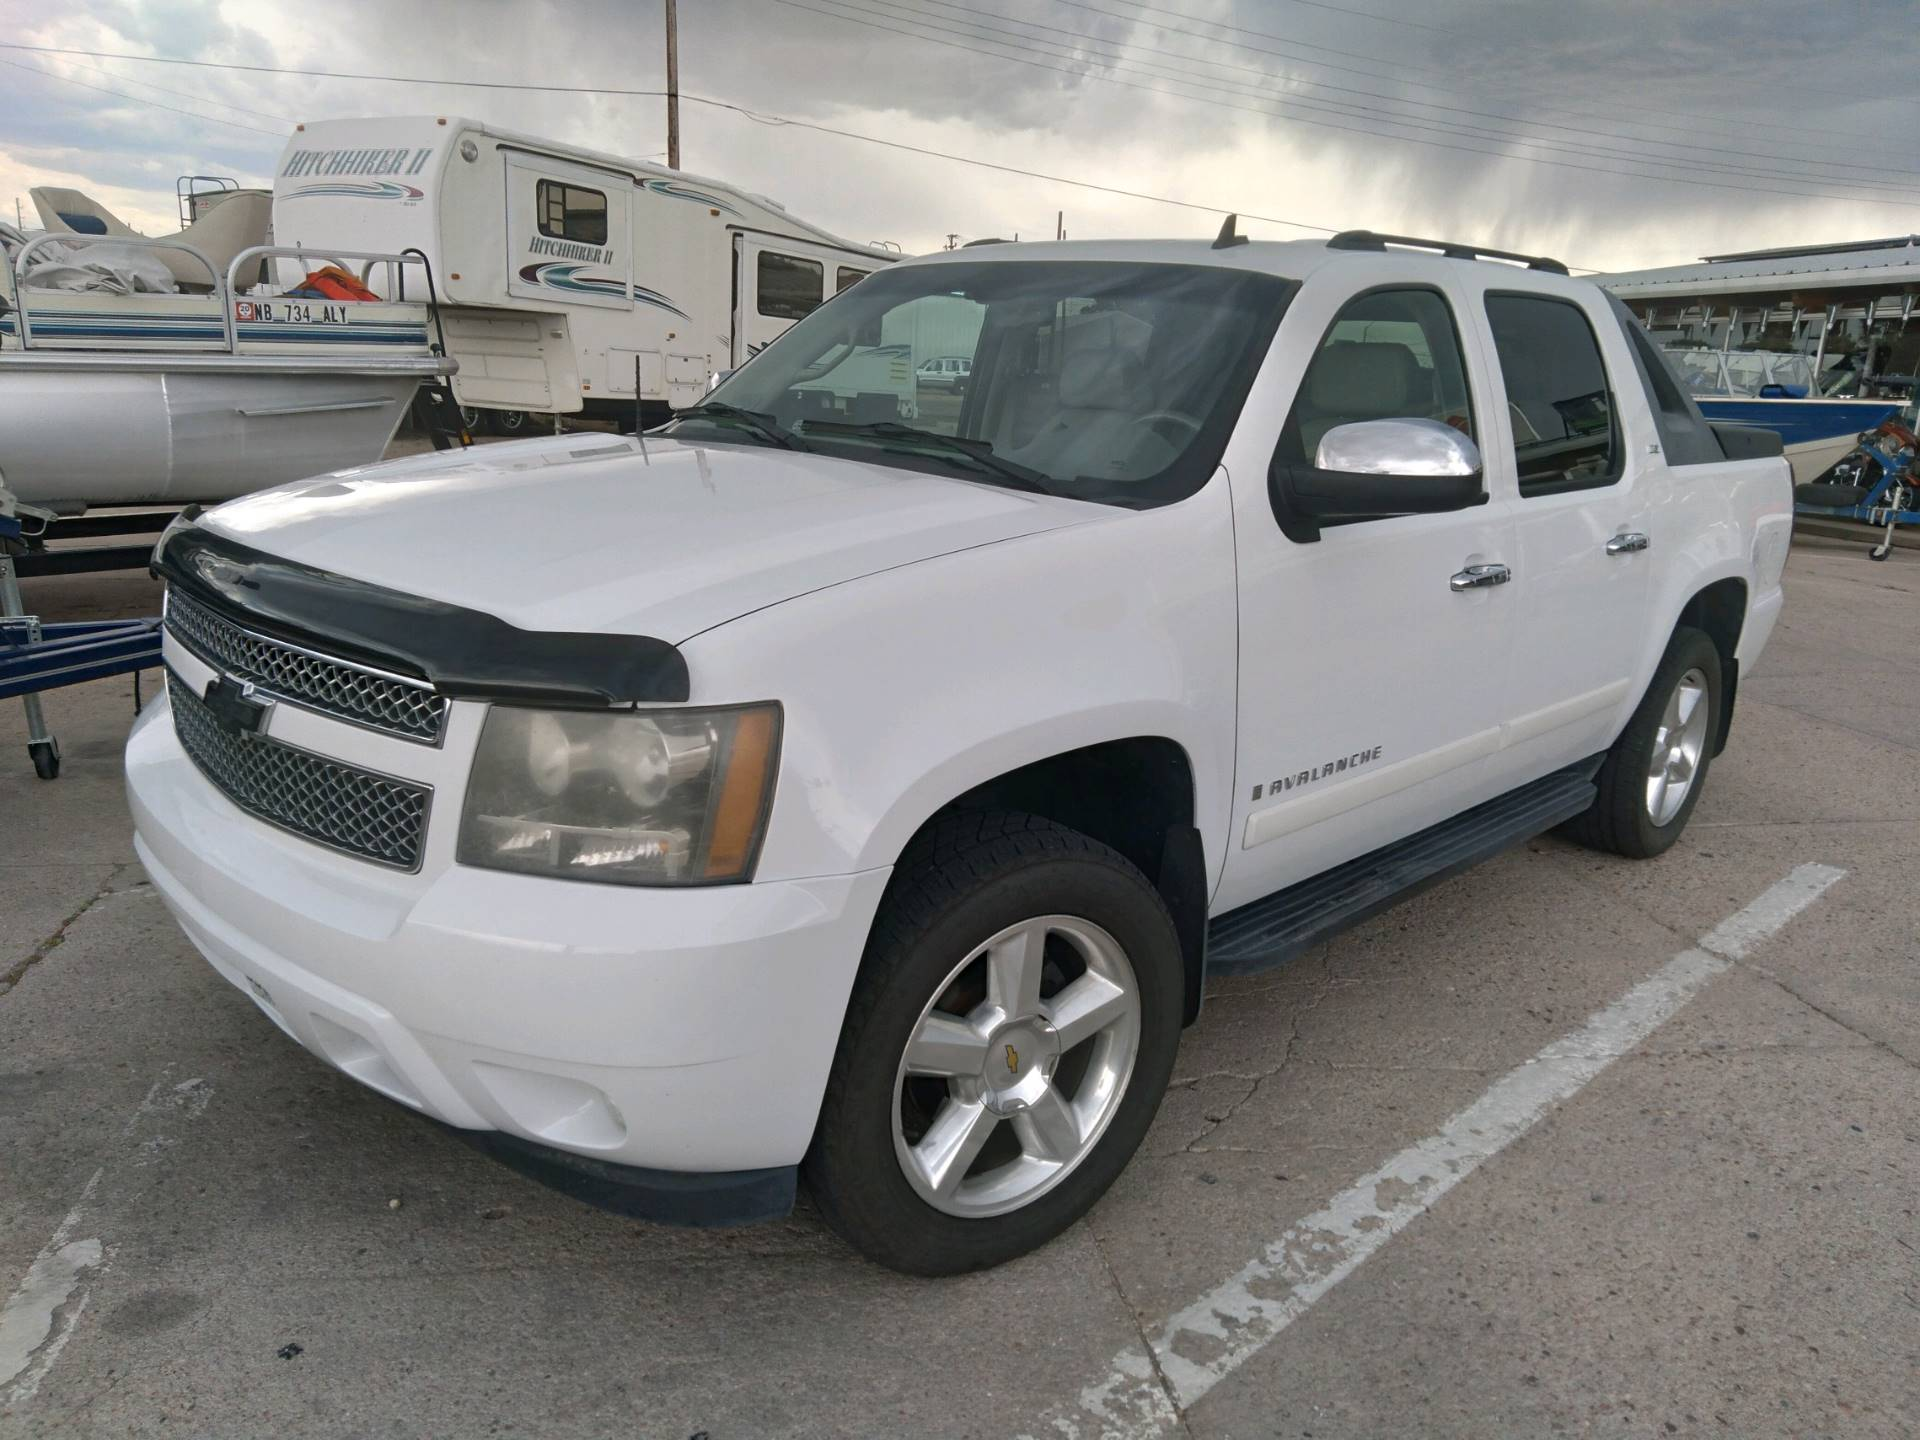 2007 Chevrolet AVALANCHE in Sterling, Colorado - Photo 1